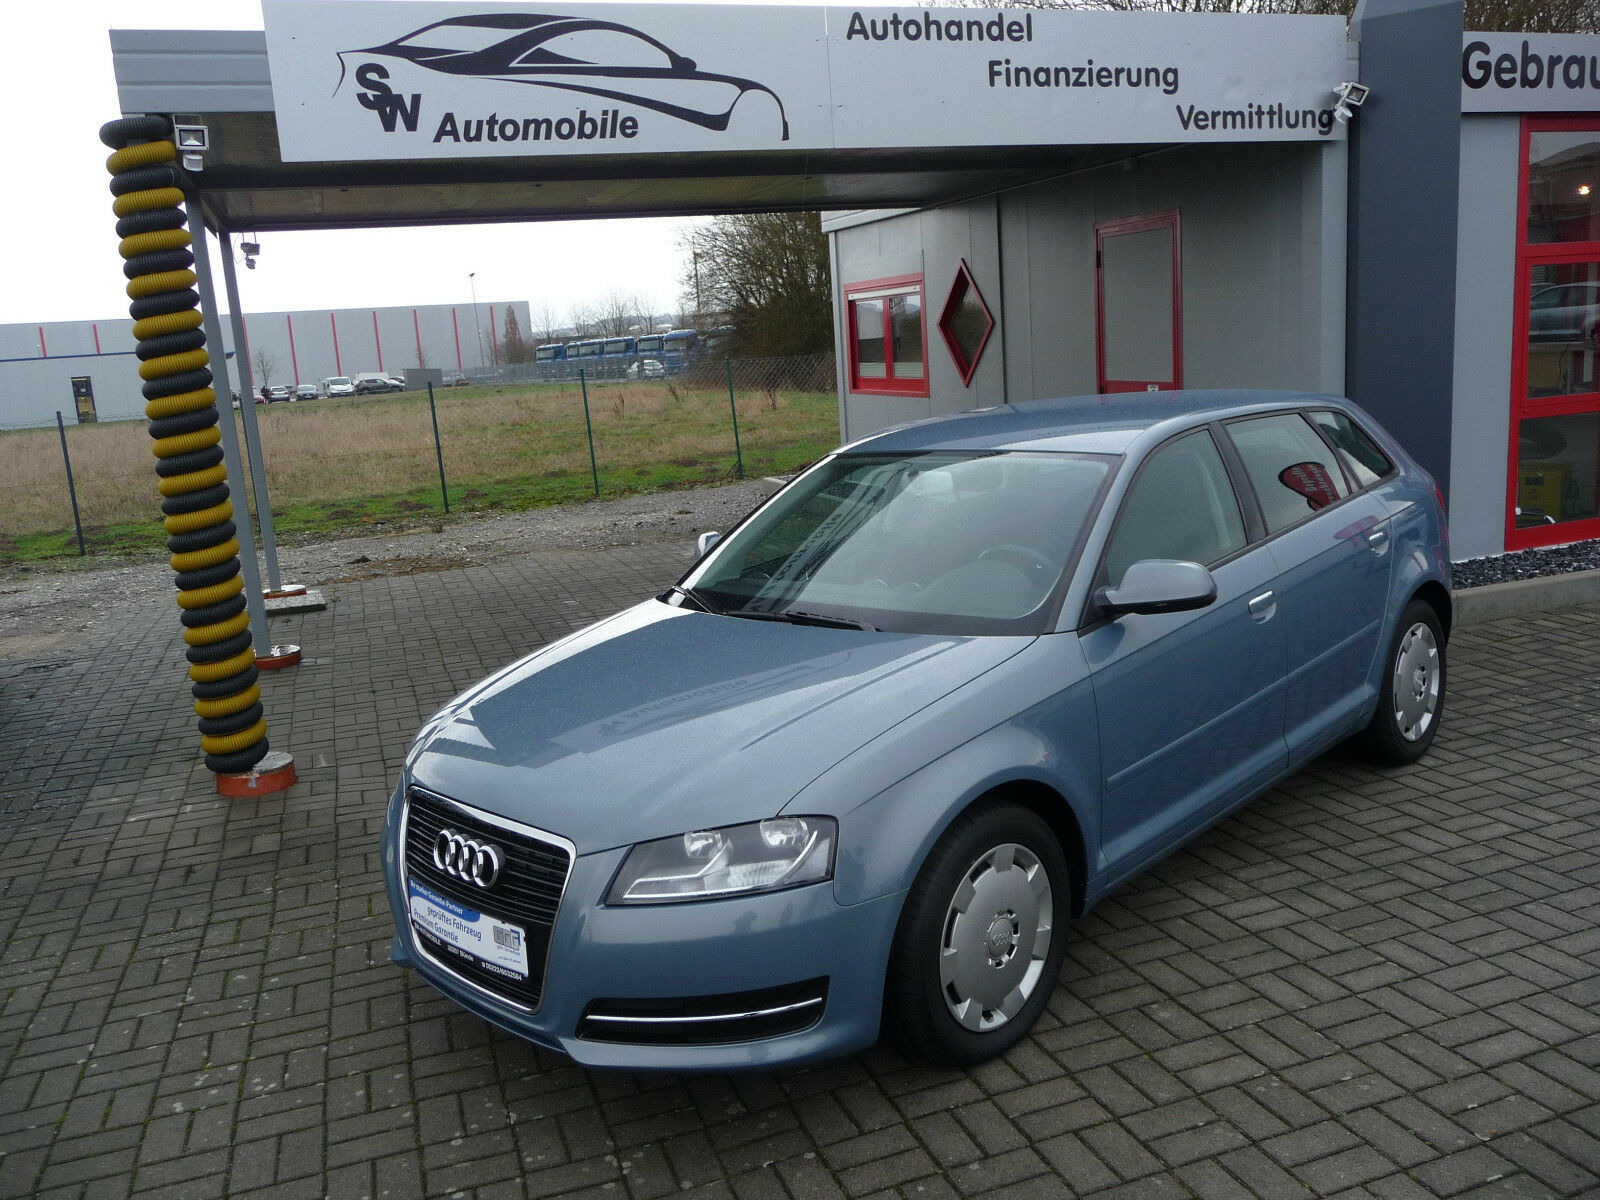 AUDI A3 Sportback 1.4 TFSI Attraction DSG Klima